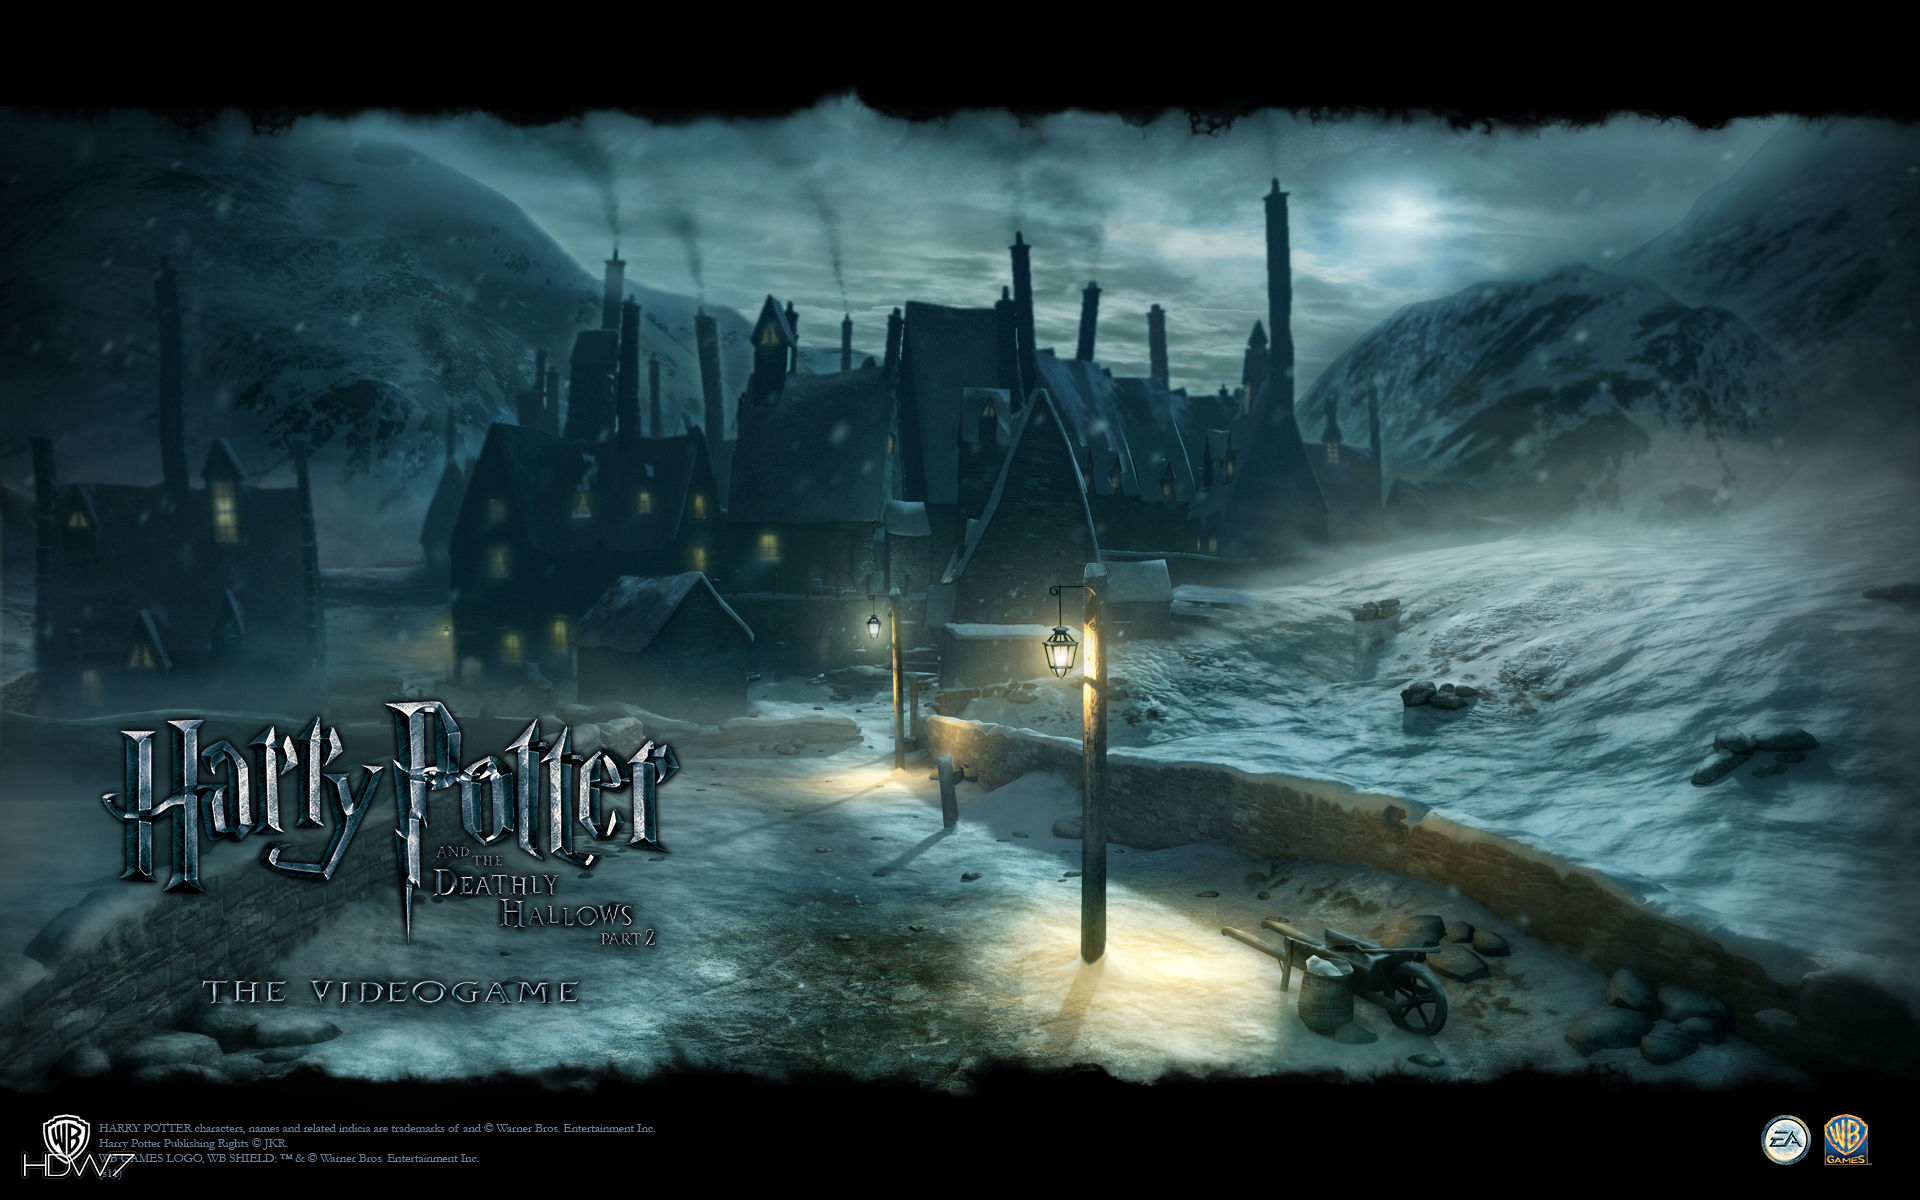 Amazing Wallpaper Harry Potter Logo - harry-potter-and-the-deathly-hallows-hogsmeade-widescreen-wallpaper  Collection_934240.jpg